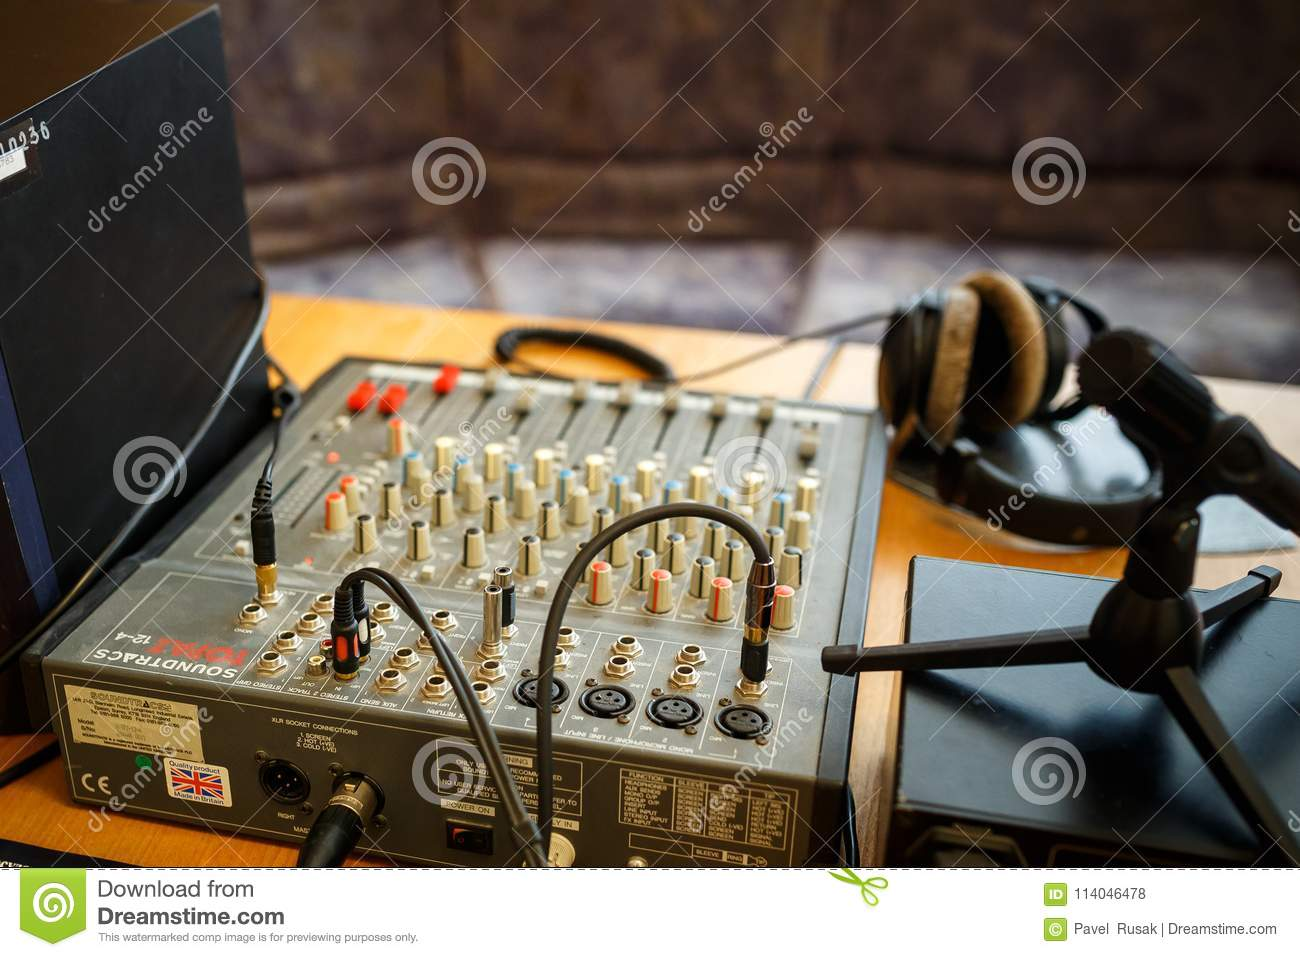 Minsk Belarus May 1 2017 Equipment For Acoustic Voice Analysis Forensic Examination Editorial Stock Photo Image Of Medical Audio 114046478